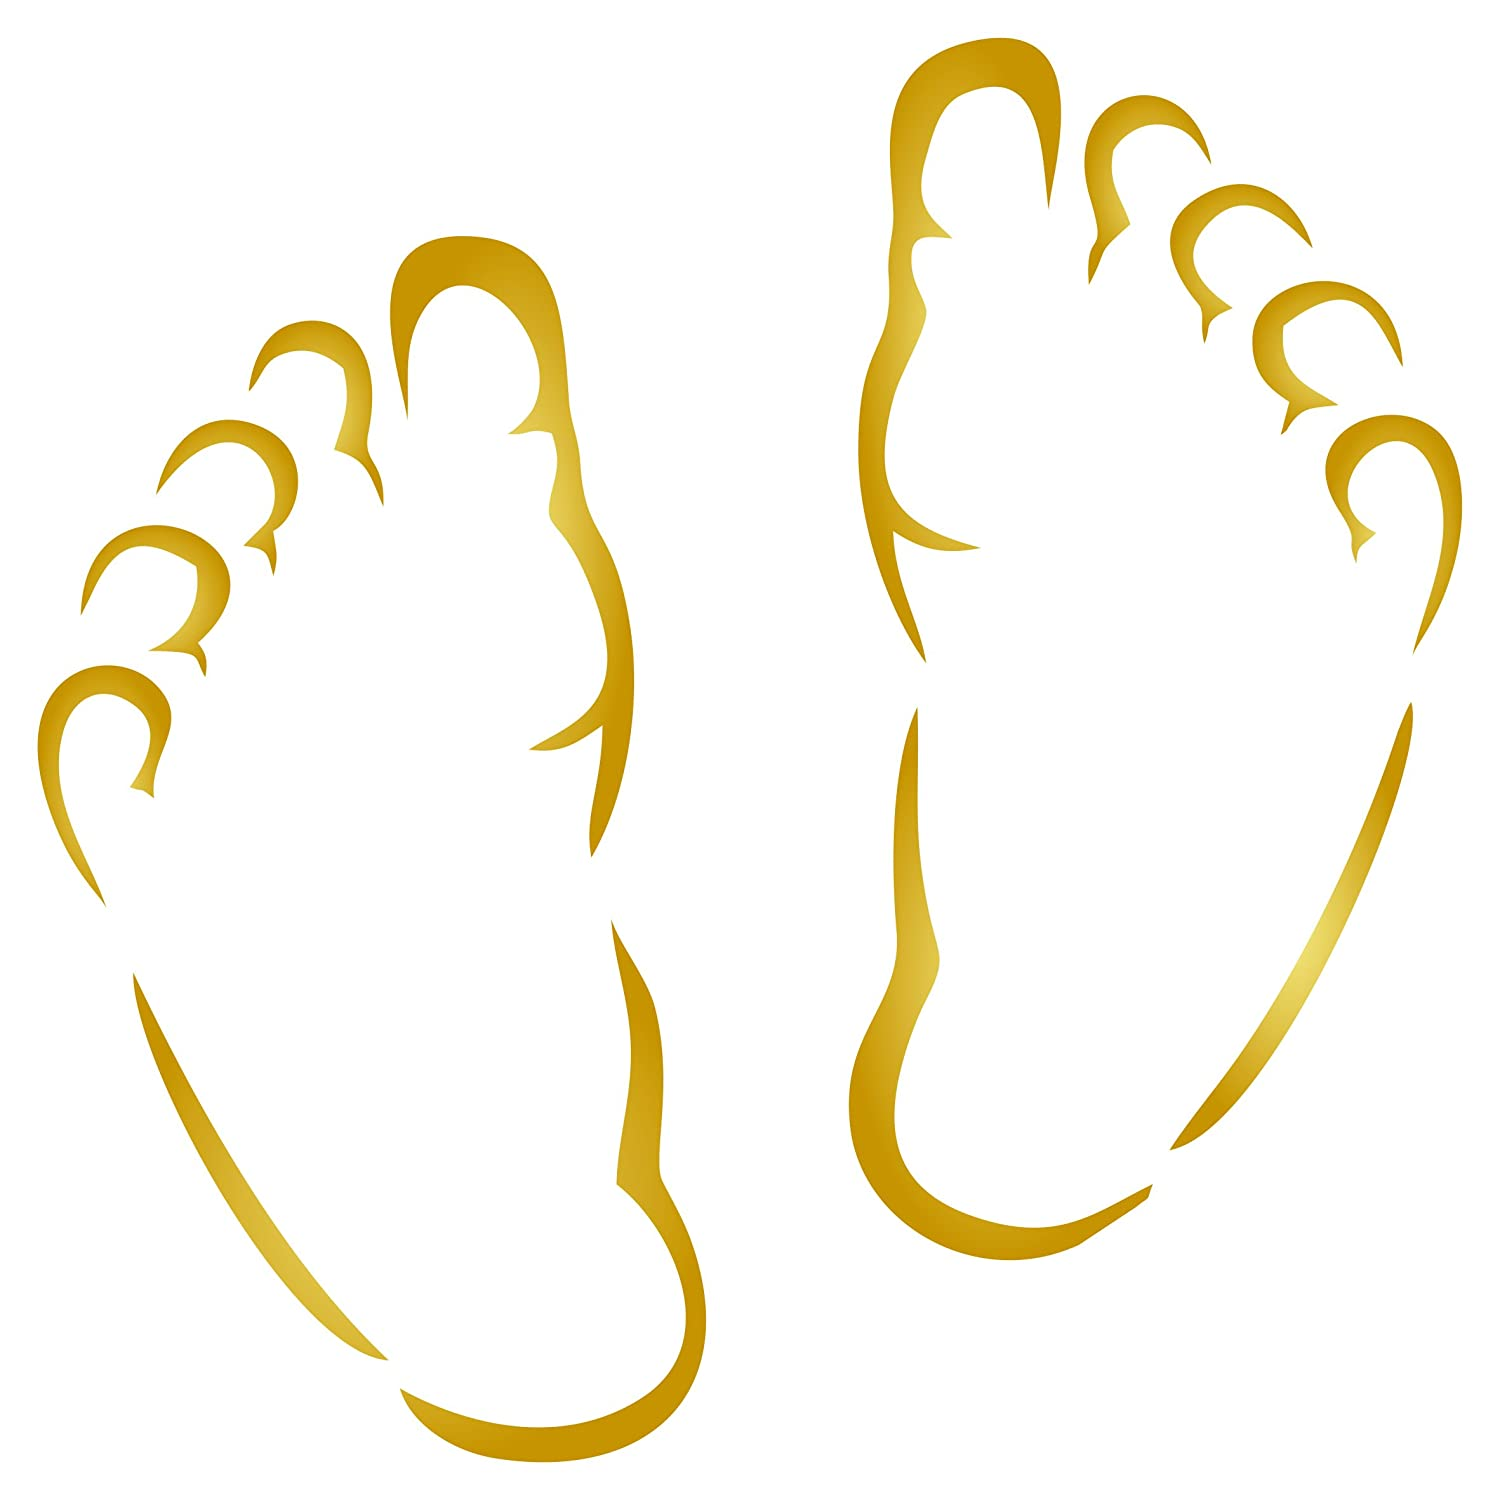 Baby Feet Stencil - 3 x 3 inch (S) - Reusable New Born Babies Child Boy Girl Wall Stencils for Painting - Use on Paper Projects Walls Floors Fabric ...